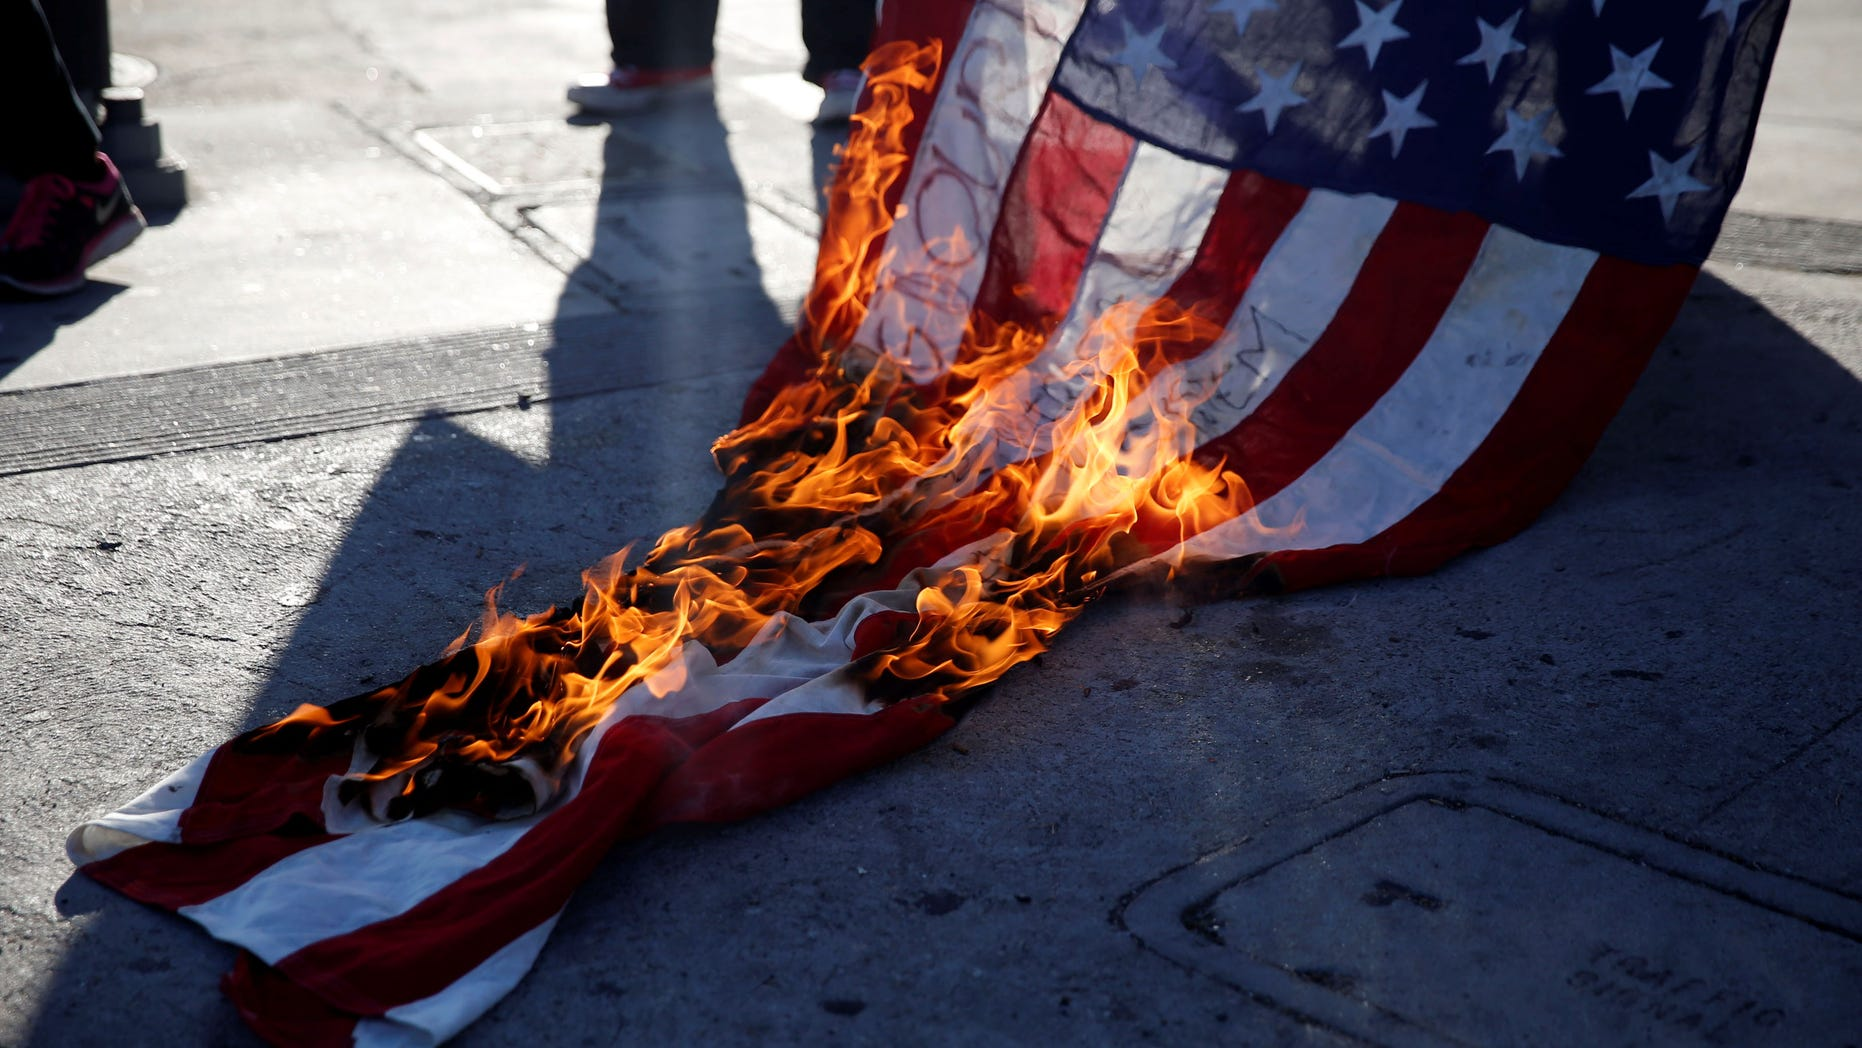 Activists burn a flag while protest on the corner of Florence Ave and Normandie Ave against the police shootings that lead to two deaths in Louisiana and Minnesota, respectively, in Los Angeles, California, U.S. July 7, 2016.  REUTERS/Patrick T. Fallon - RTX2K9GY